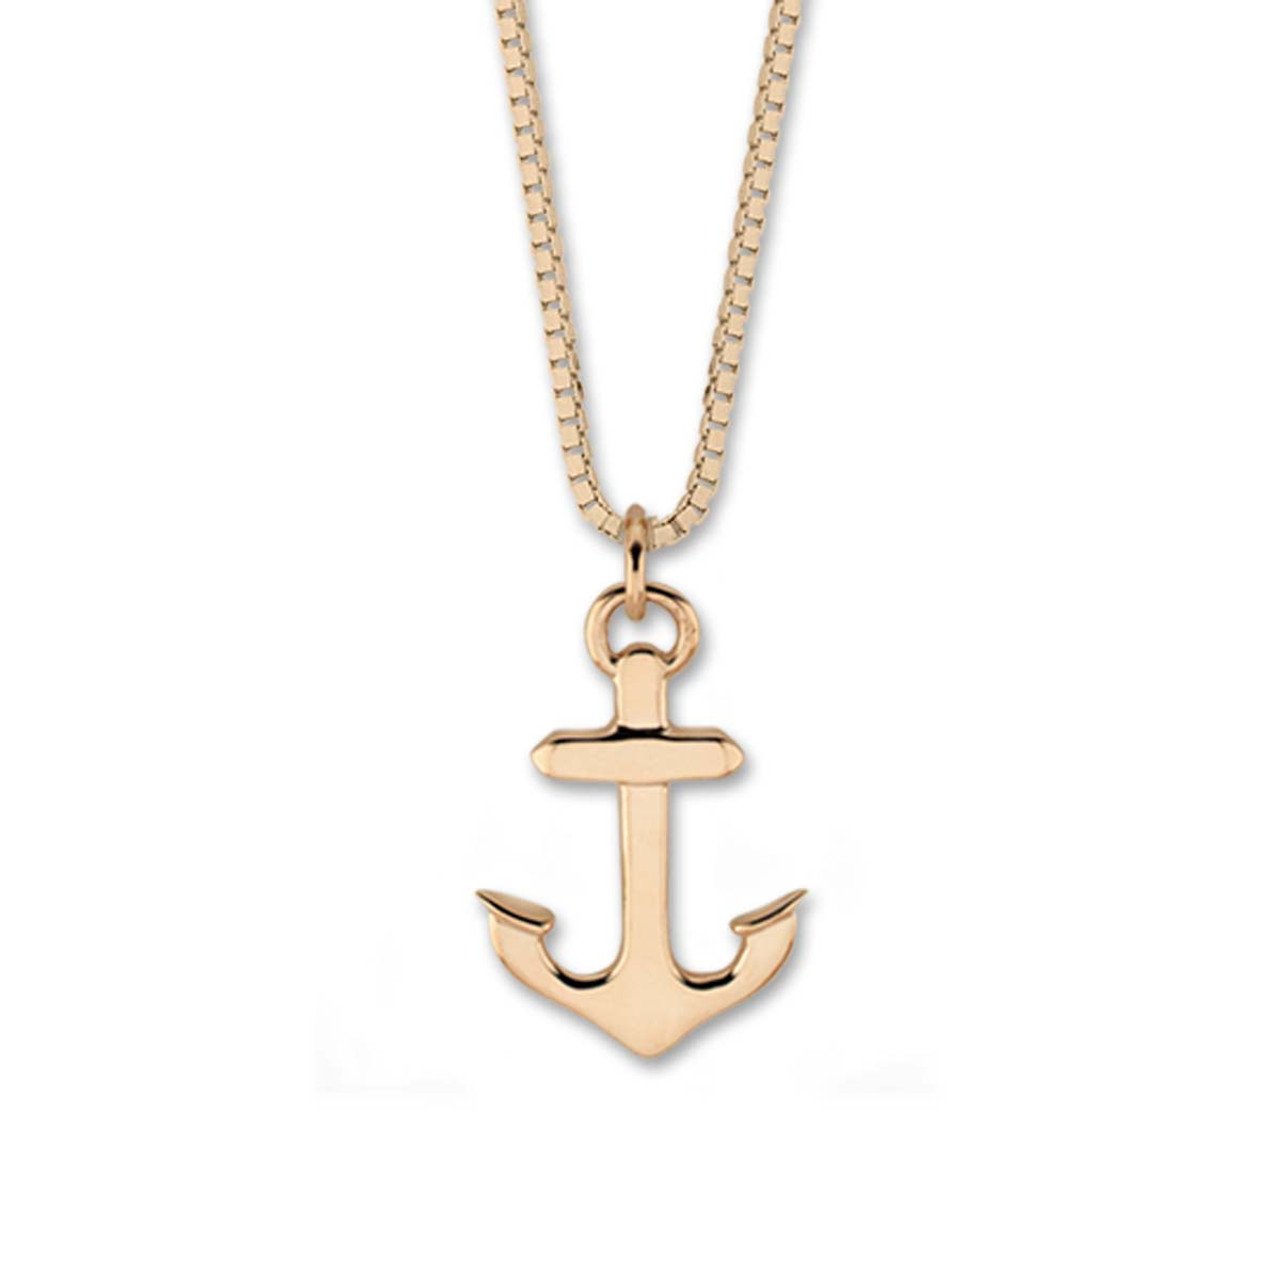 Buy 14kt small anchor pendant from online jewelry store 14kt small anchor pendant aloadofball Images